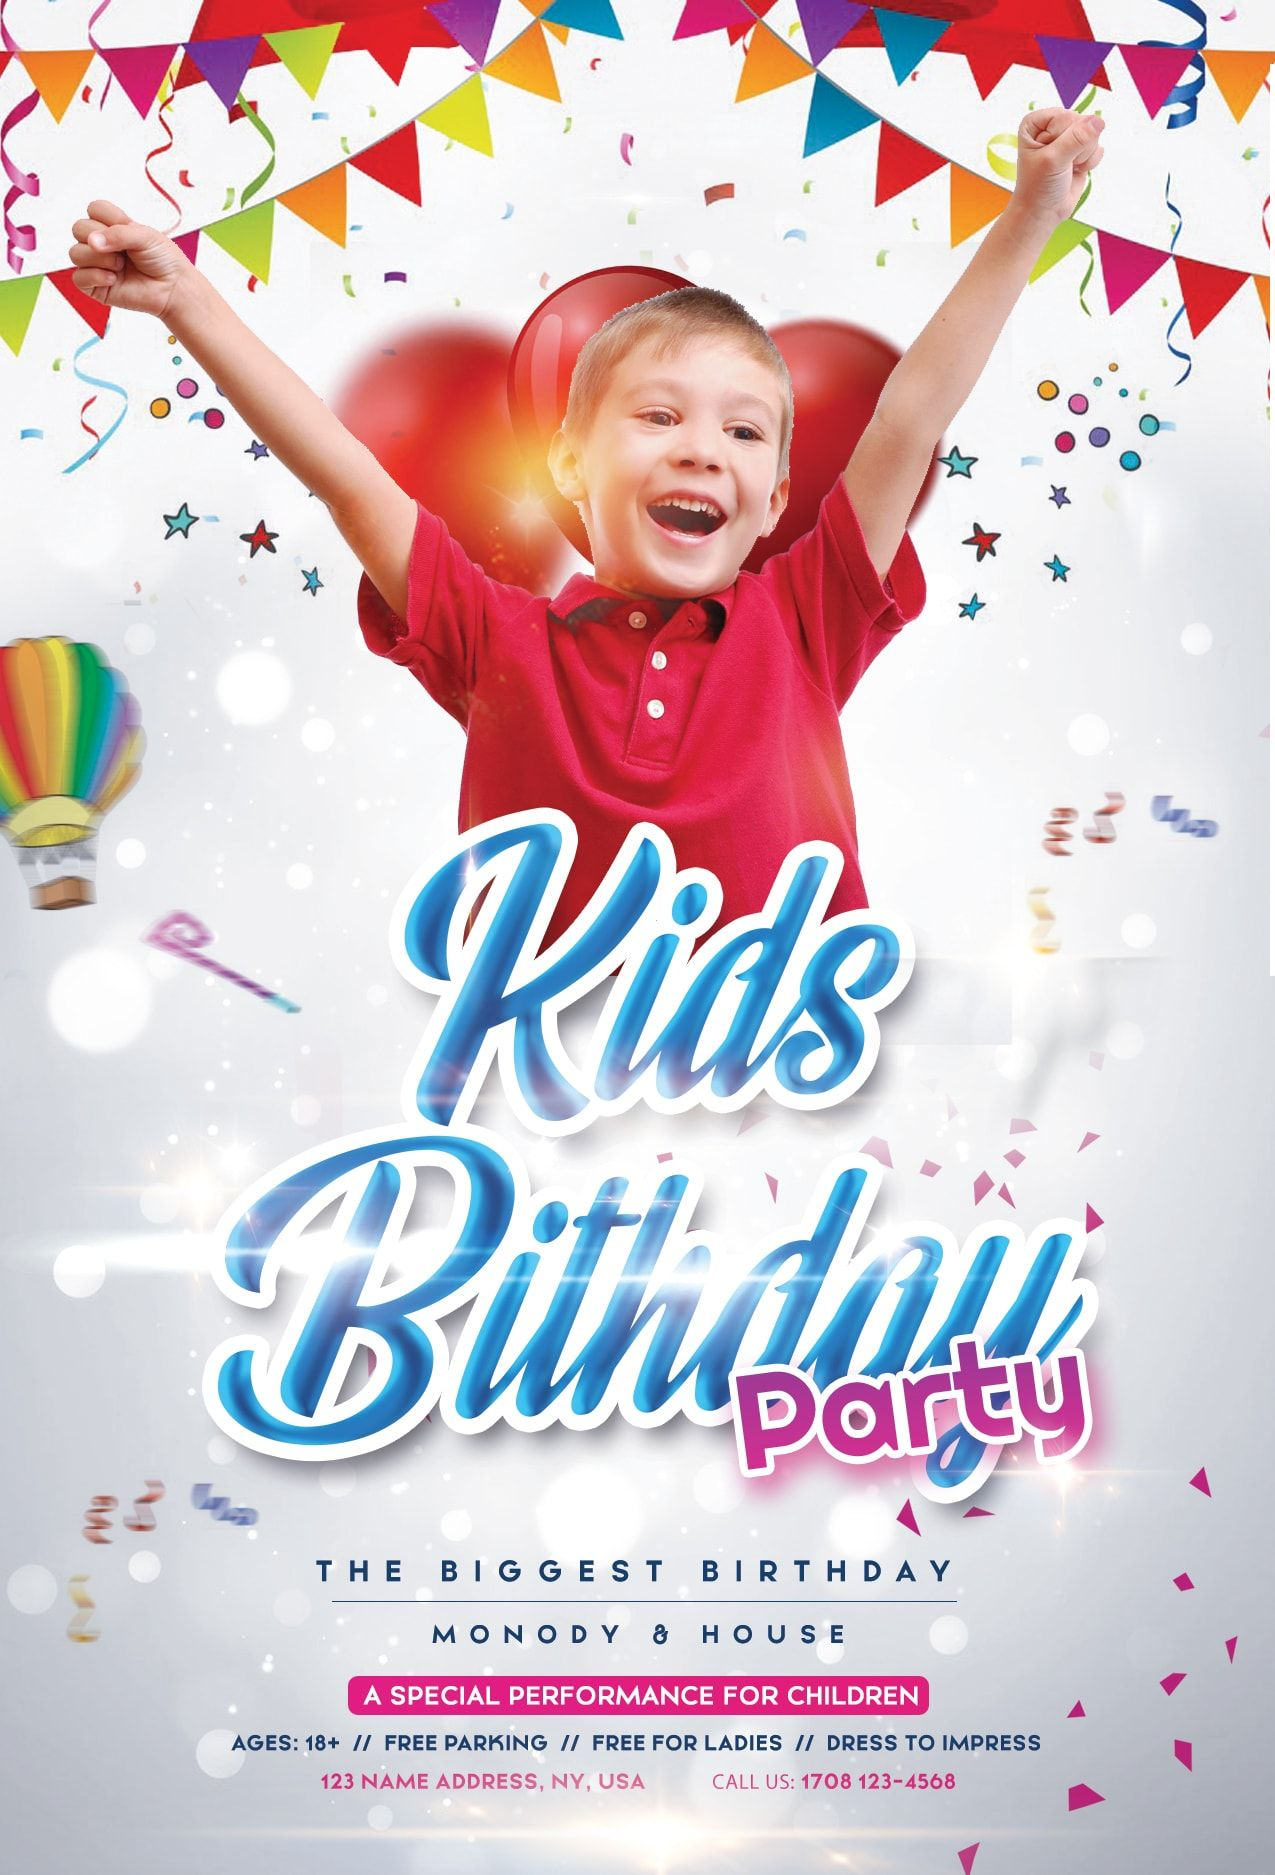 Birthday kids event download free psd flyer template